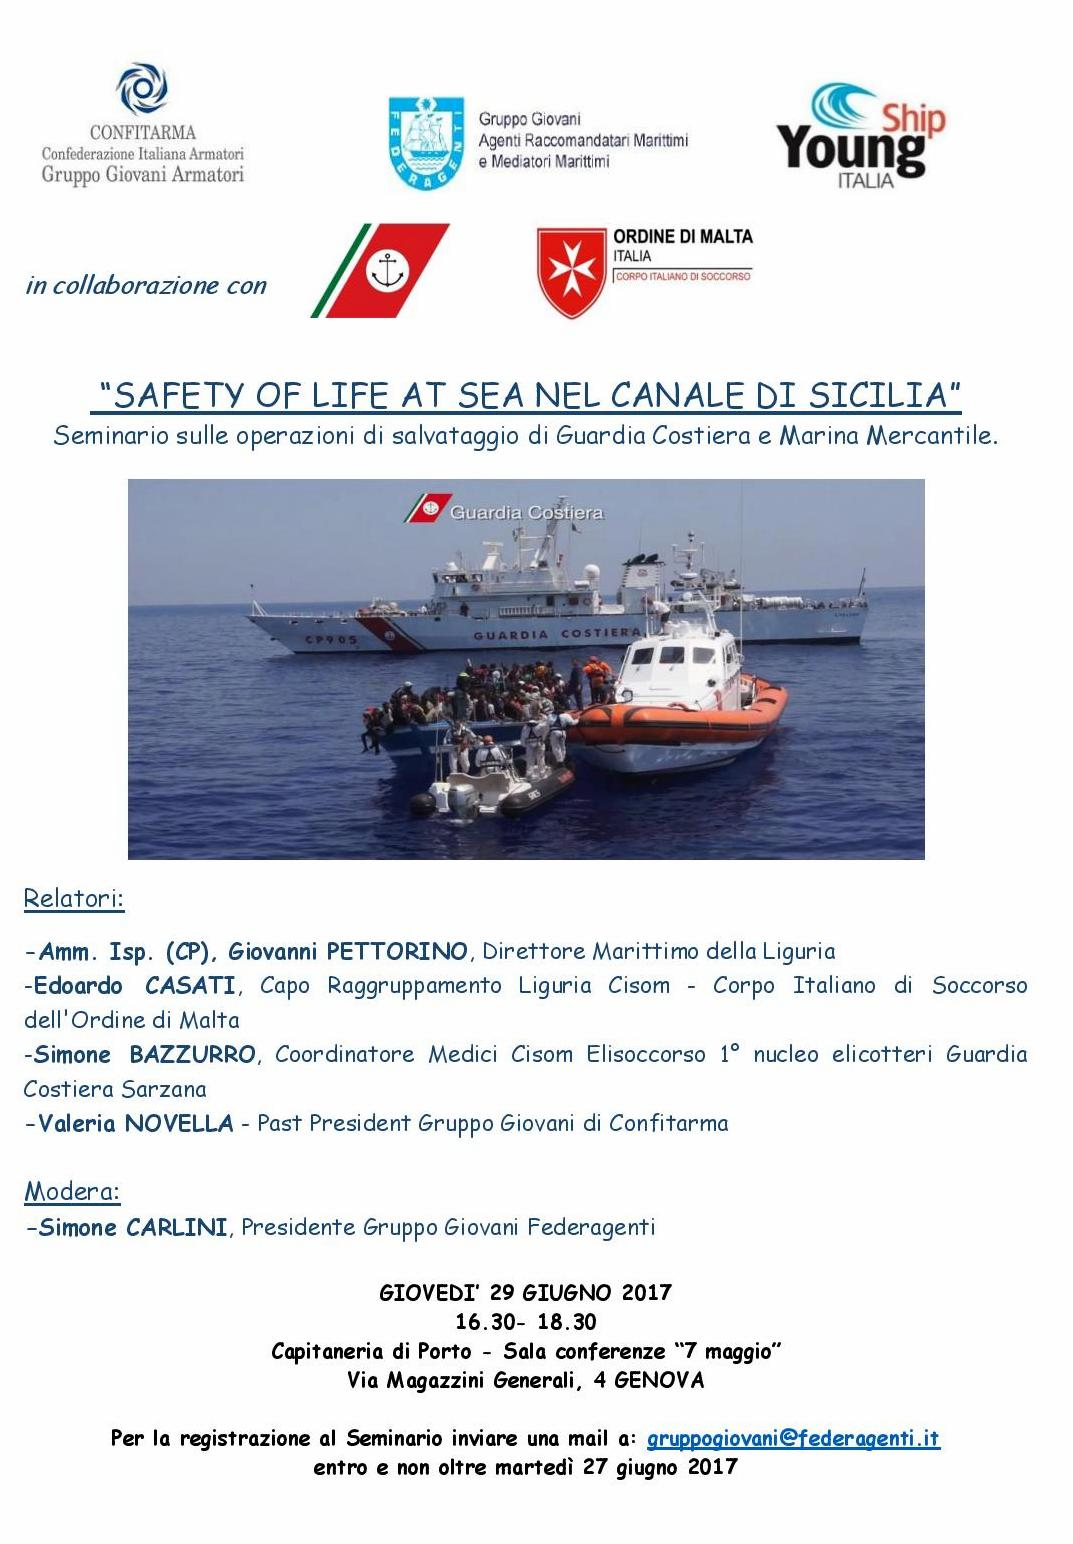 INVITO SEMINARIO  SAFETY OF LIFE AT SEA NEL CANALE DI SICILIA - GENOVA 29 GIUGNO 2017-page-001.jpg